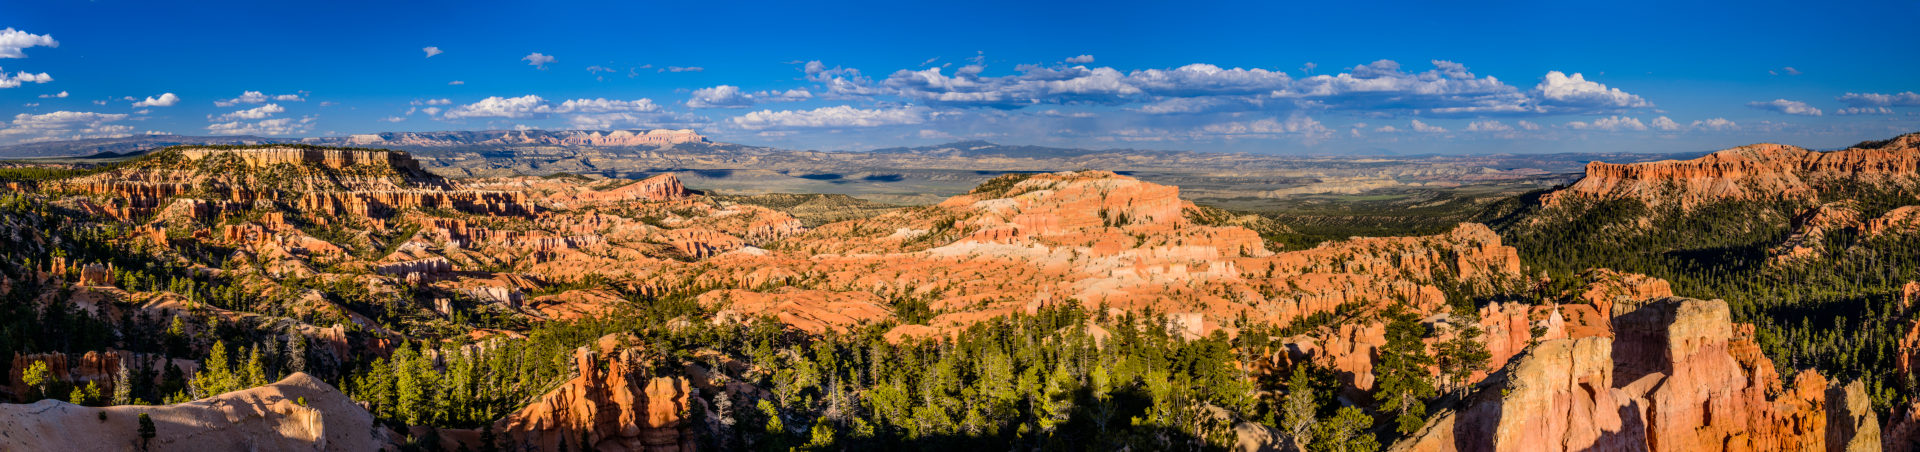 USA, Utah, Garfield County, Bryce Canyon National Park, Sunrise Point, Blick gegen Escalante Mountains